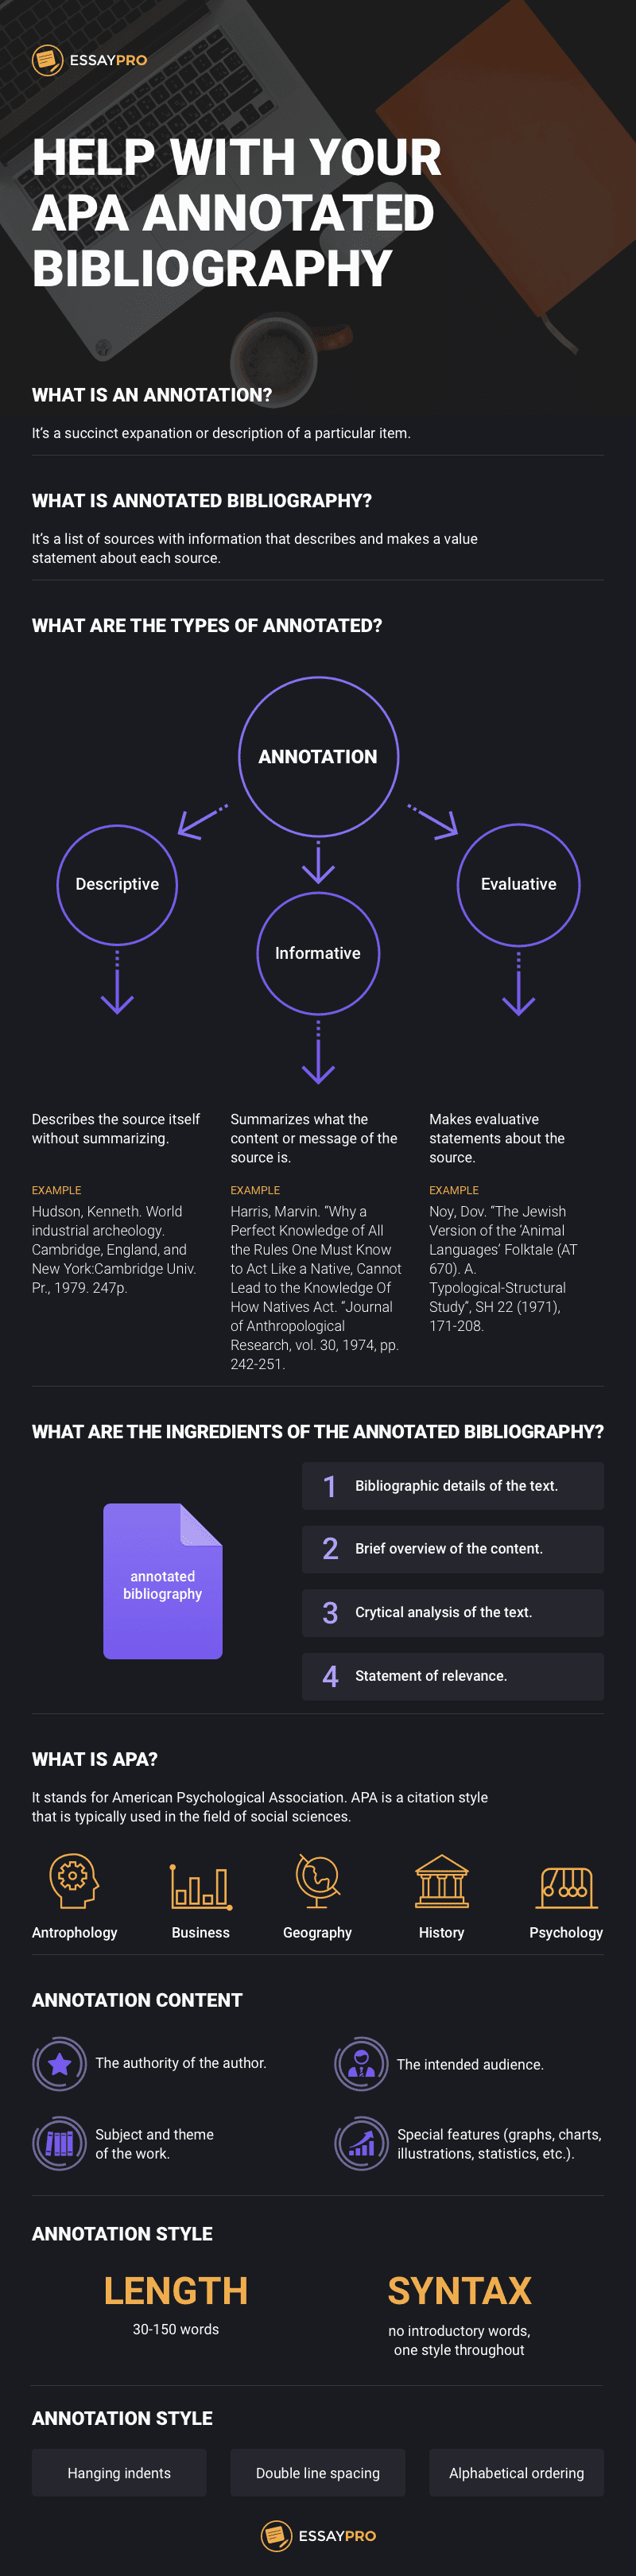 Help with your APA Annotated Bibliography #infographic